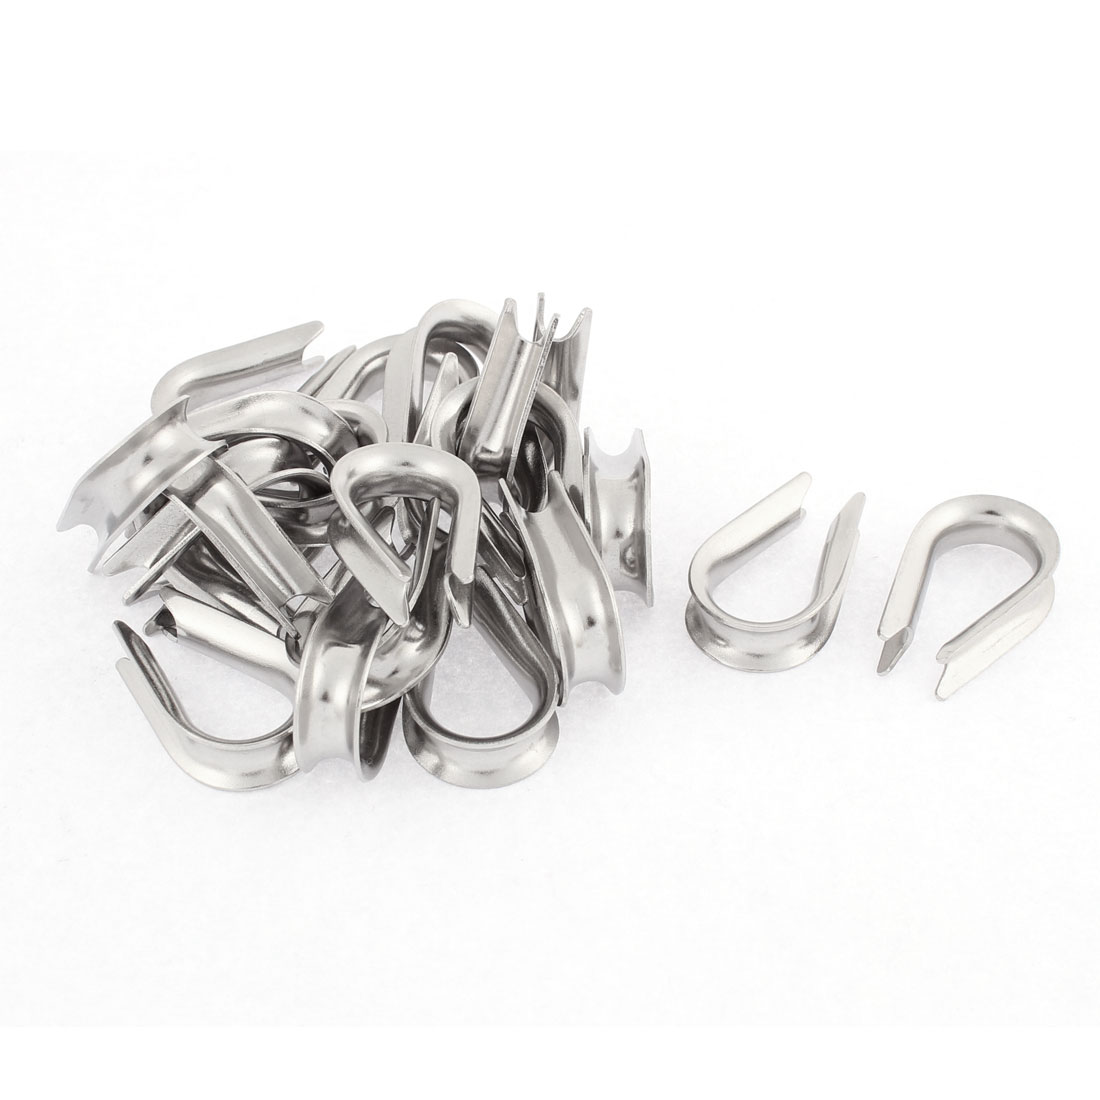 Stainless Steel 5mm Standard Wire Rope Cable Thimbles Rigging Silver Tone 20pcs